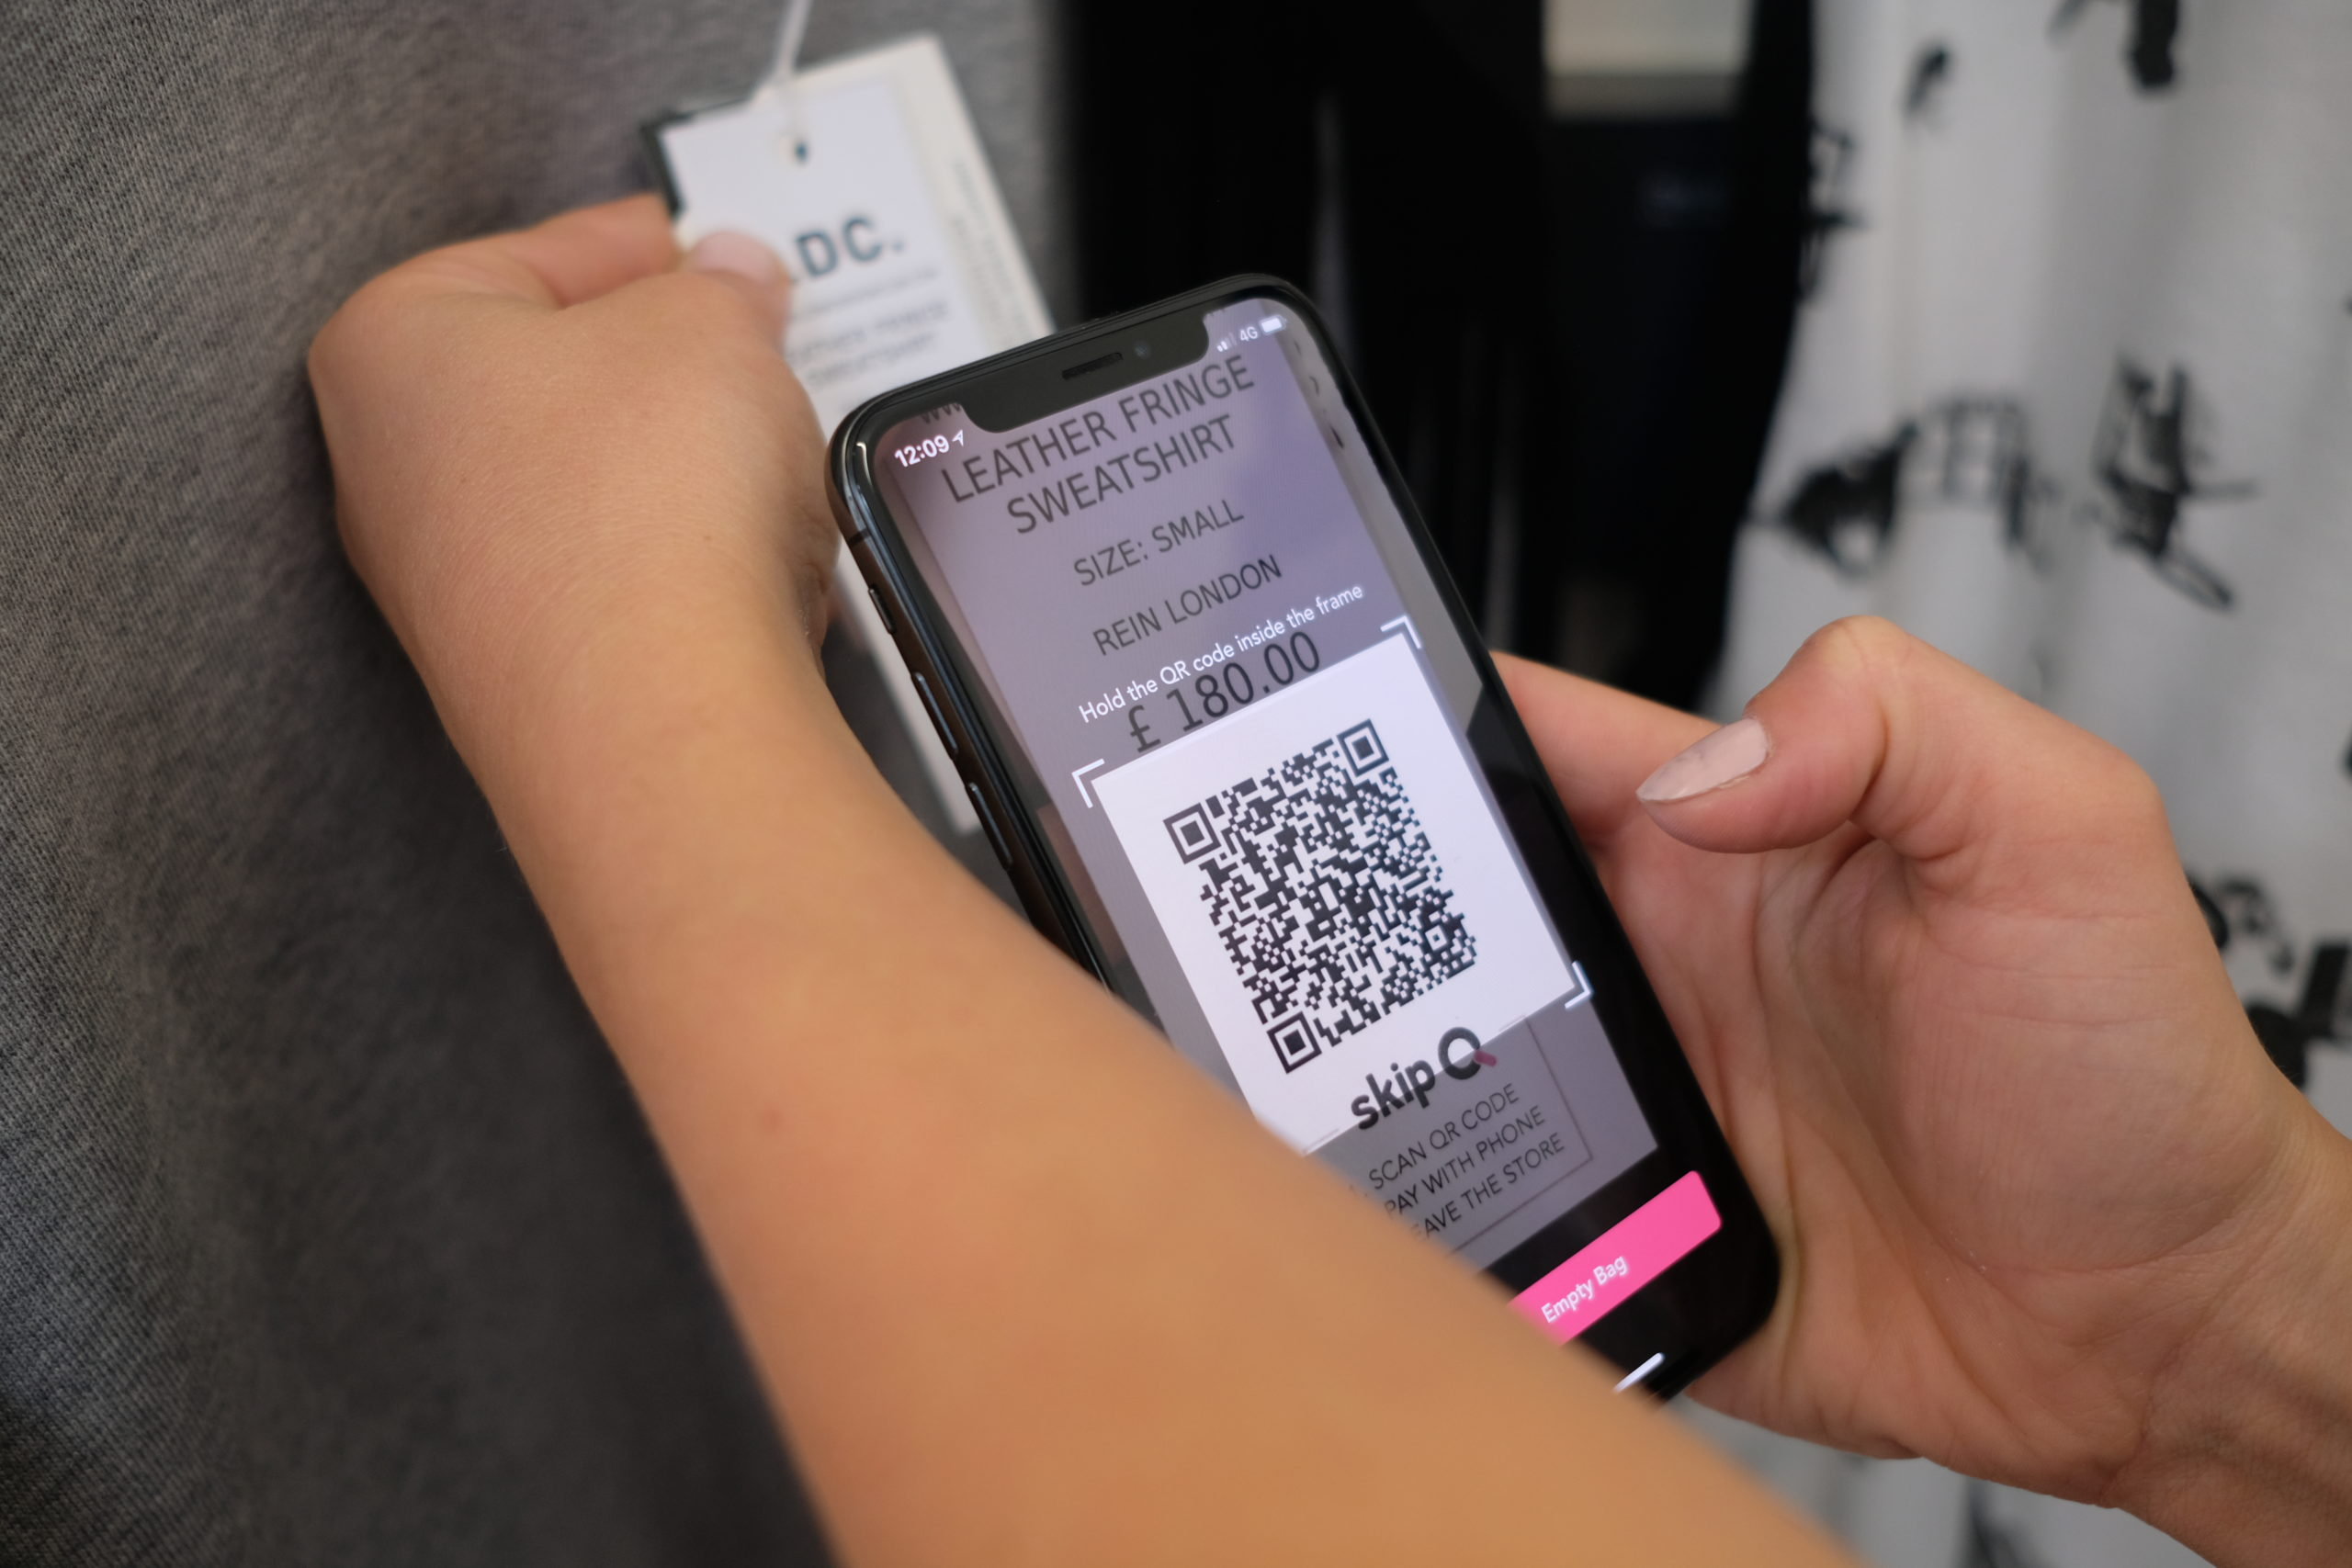 Mobile phone hovering over QR code on a clothing tag